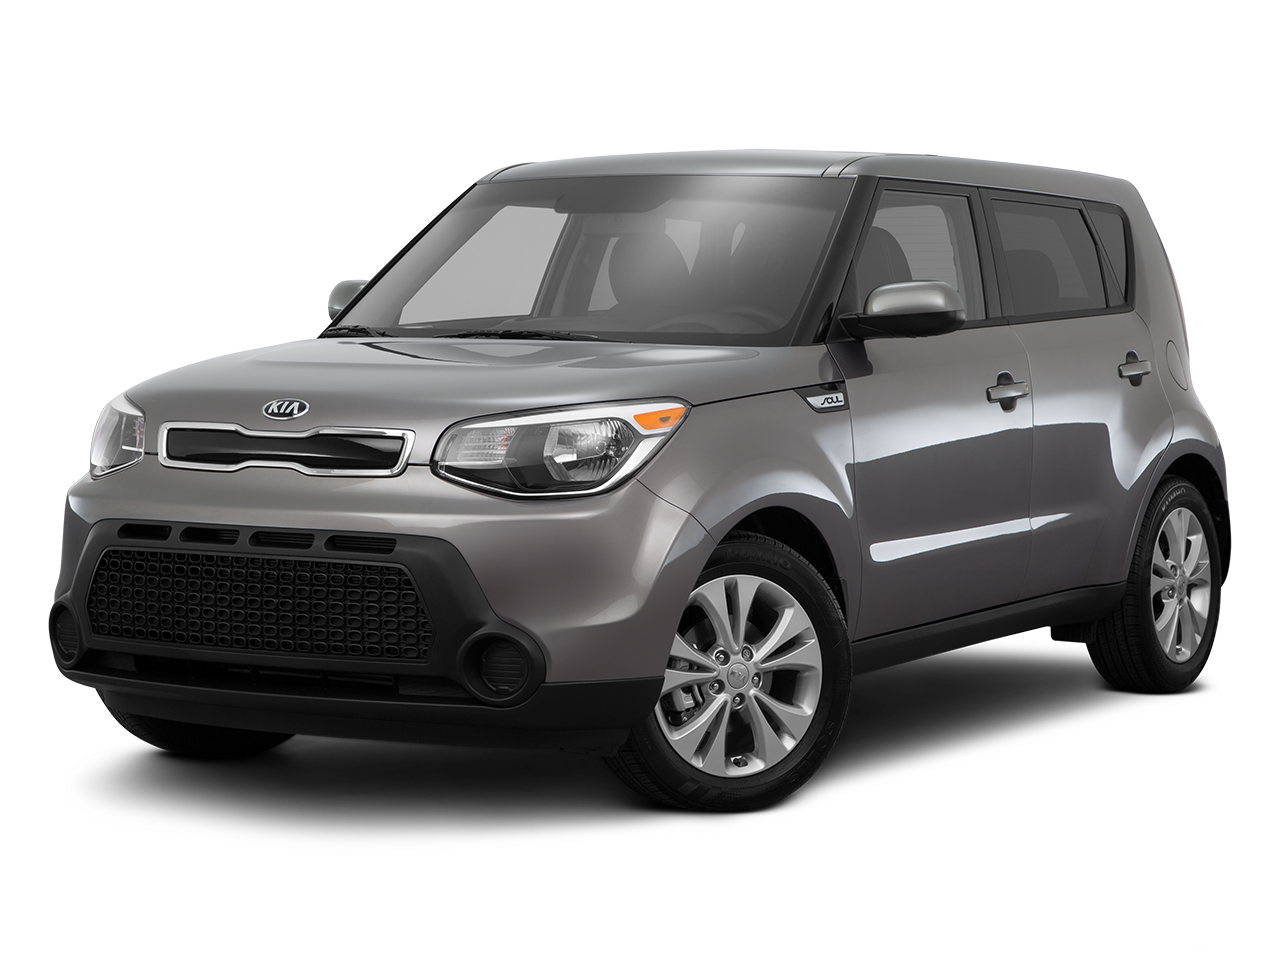 buy or lease the new 2016 kia soul quirk kia. Black Bedroom Furniture Sets. Home Design Ideas